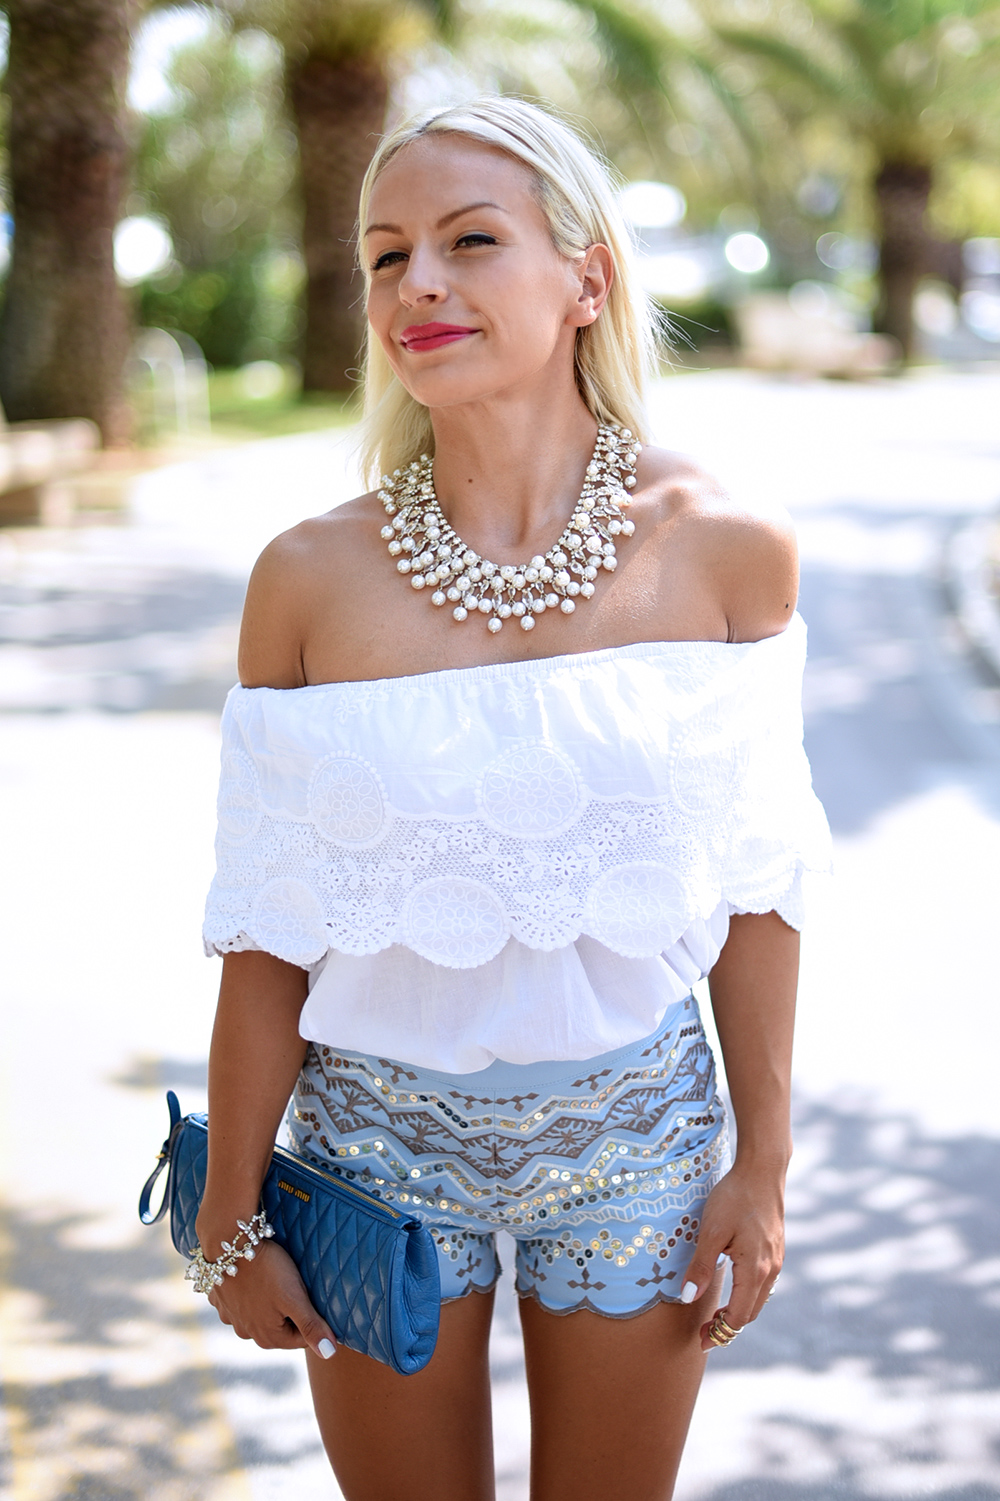 Chicwish italia, chicwish spedizioni, pantaloncini a vita alta, off shouder top, camicie spalle scoperte top – outfit summer 2015 fashion blogger It-Girl by Eleonora Petrella